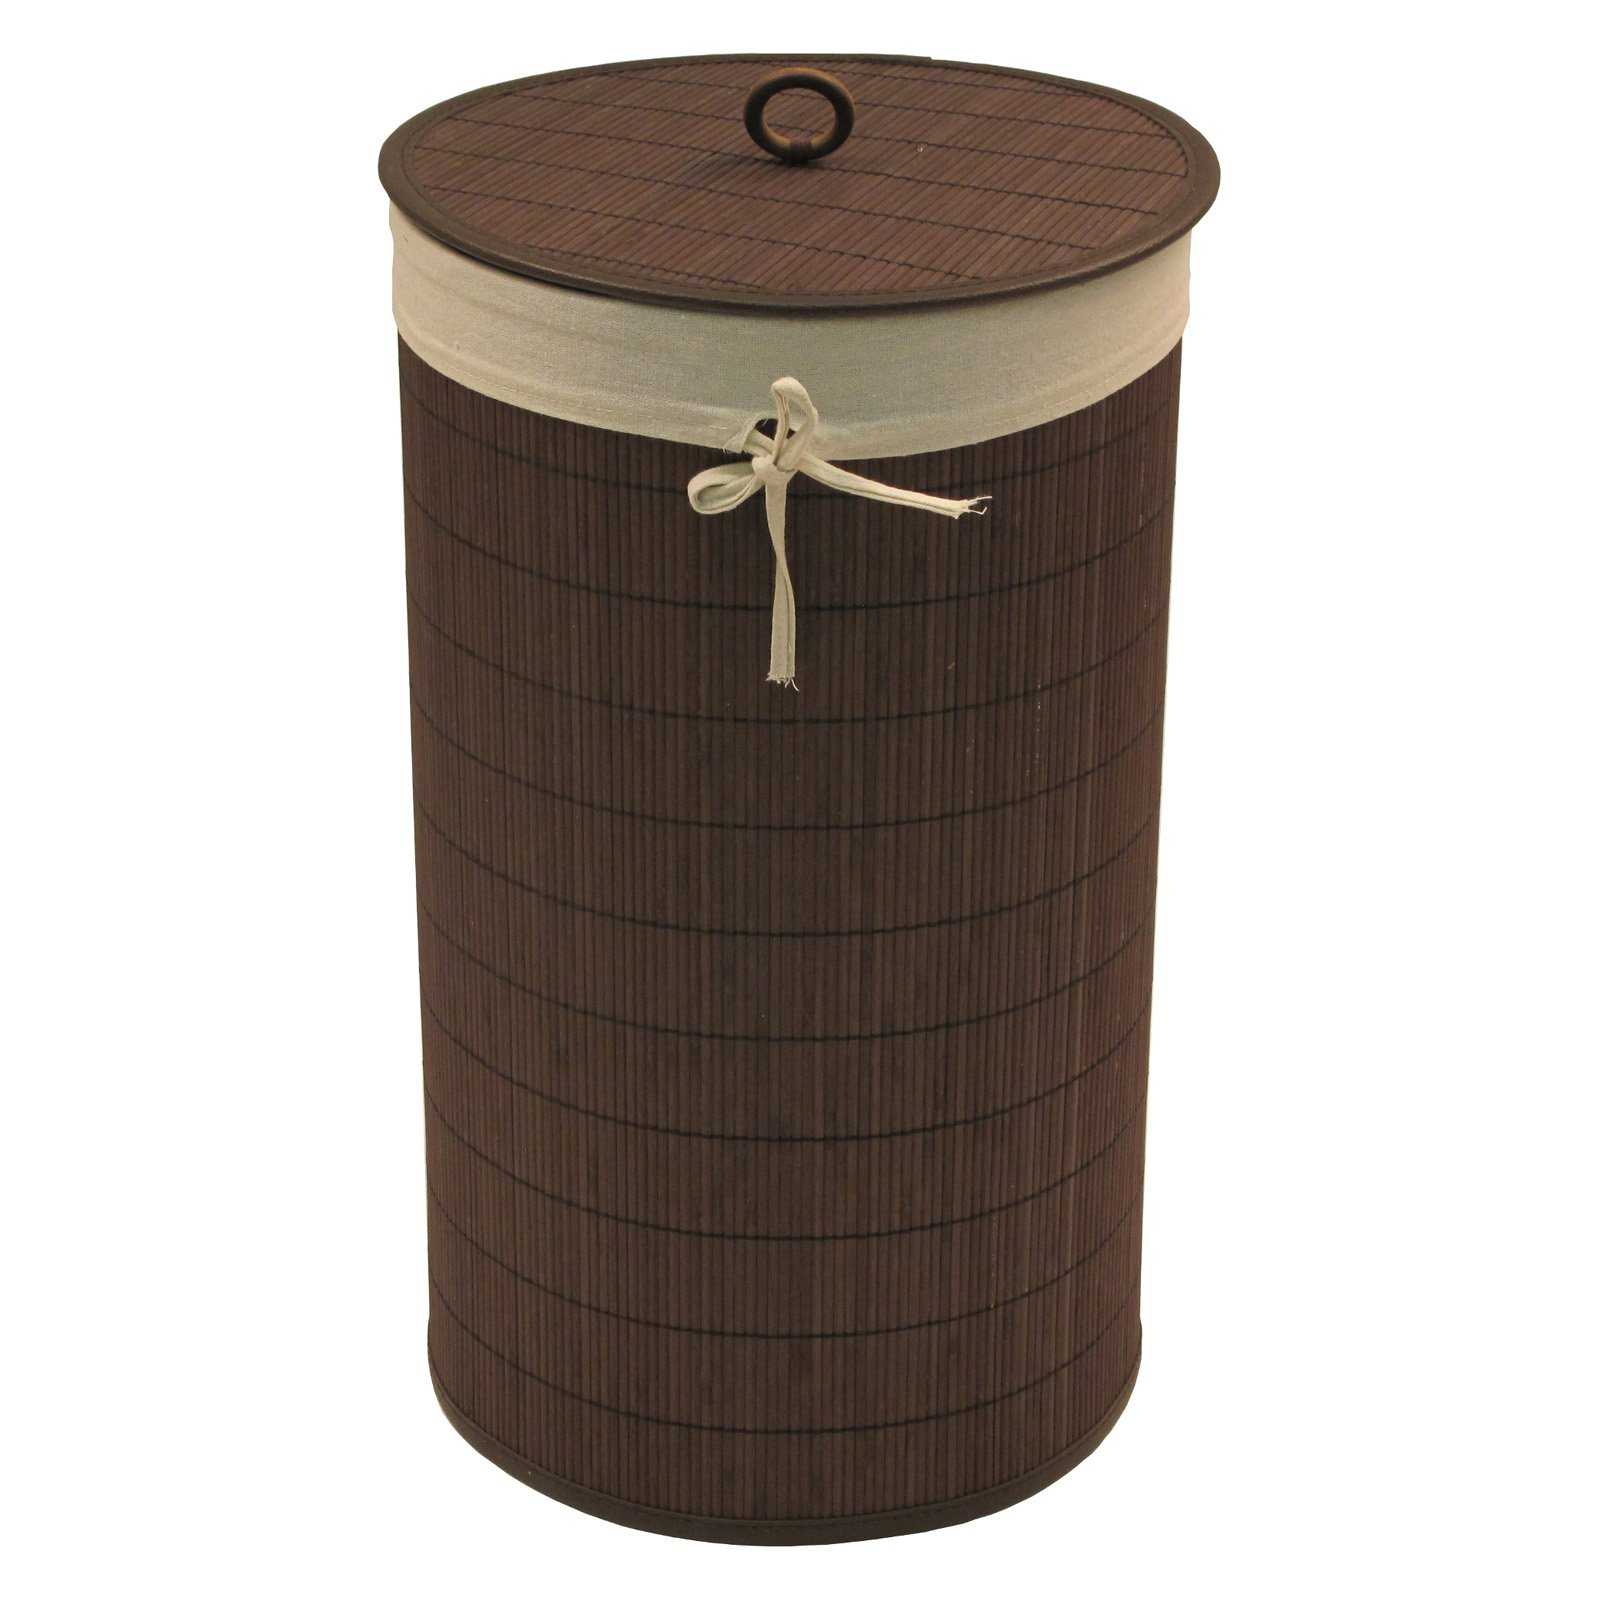 Baby Things Bamboo Hamper with Liner, Espresso